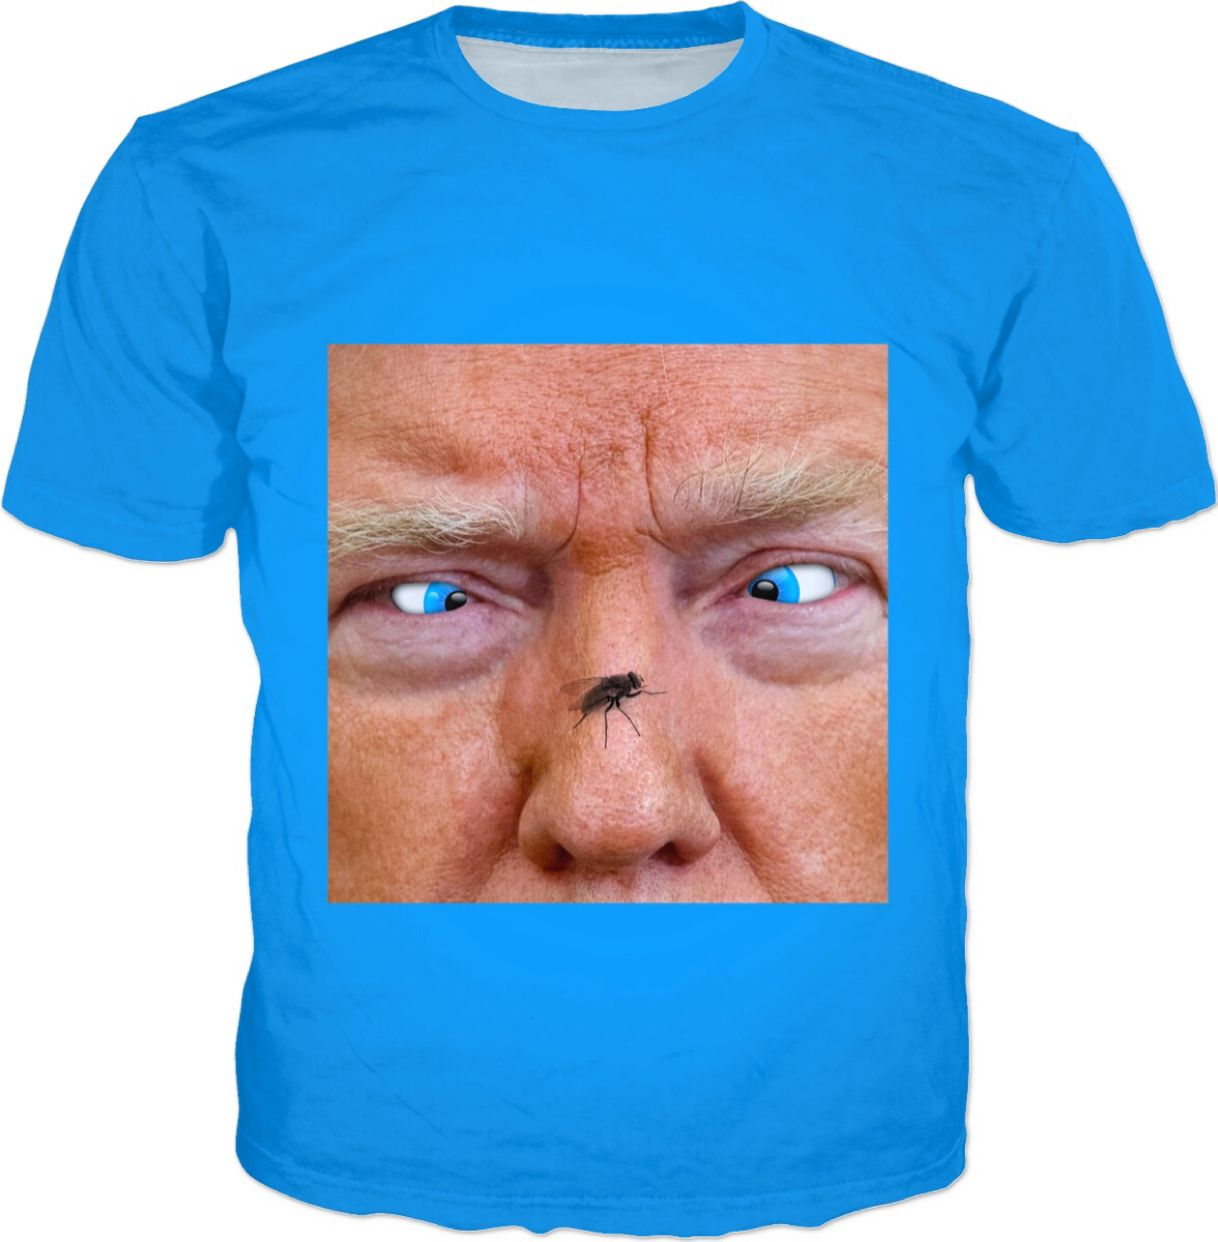 Trump Eye Reflection Funny Meme T Shirt Cross Eyed Fly On Nose Https Www Rageon Com Products Trump Eye Reflection Funny Graphic Apparel Shirt Sketch Rageon